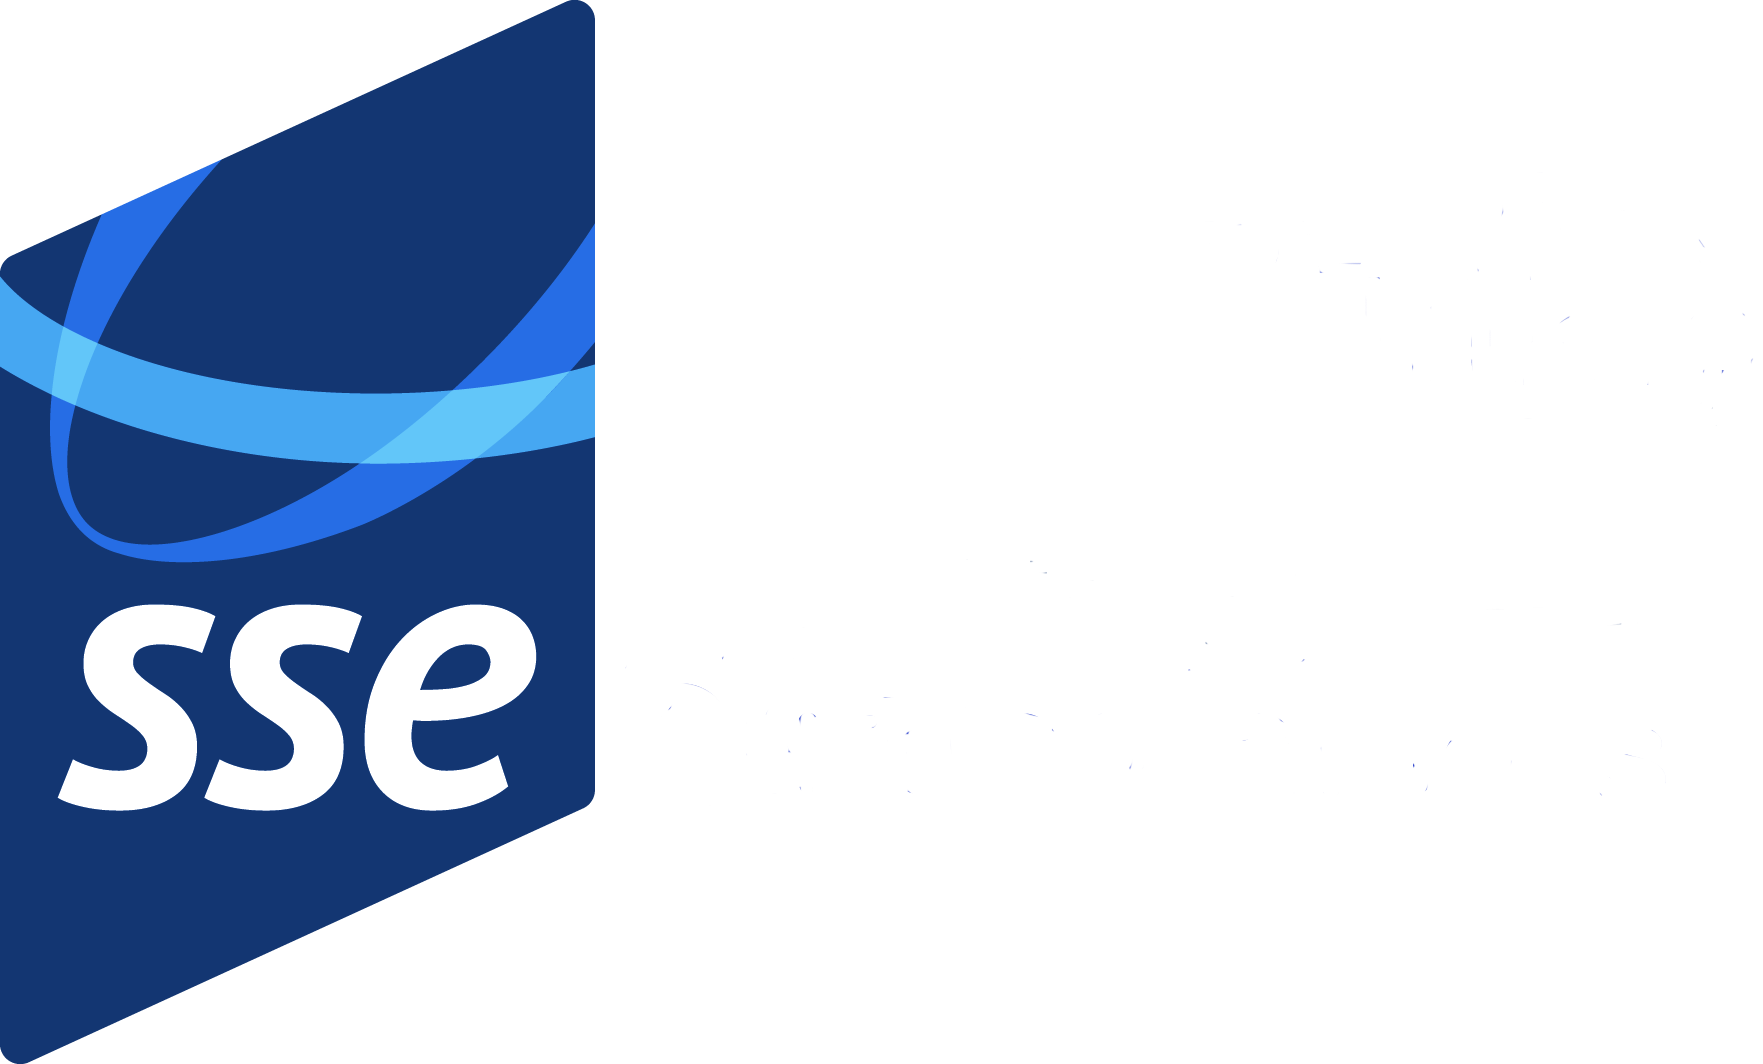 SSE Outdoors logo